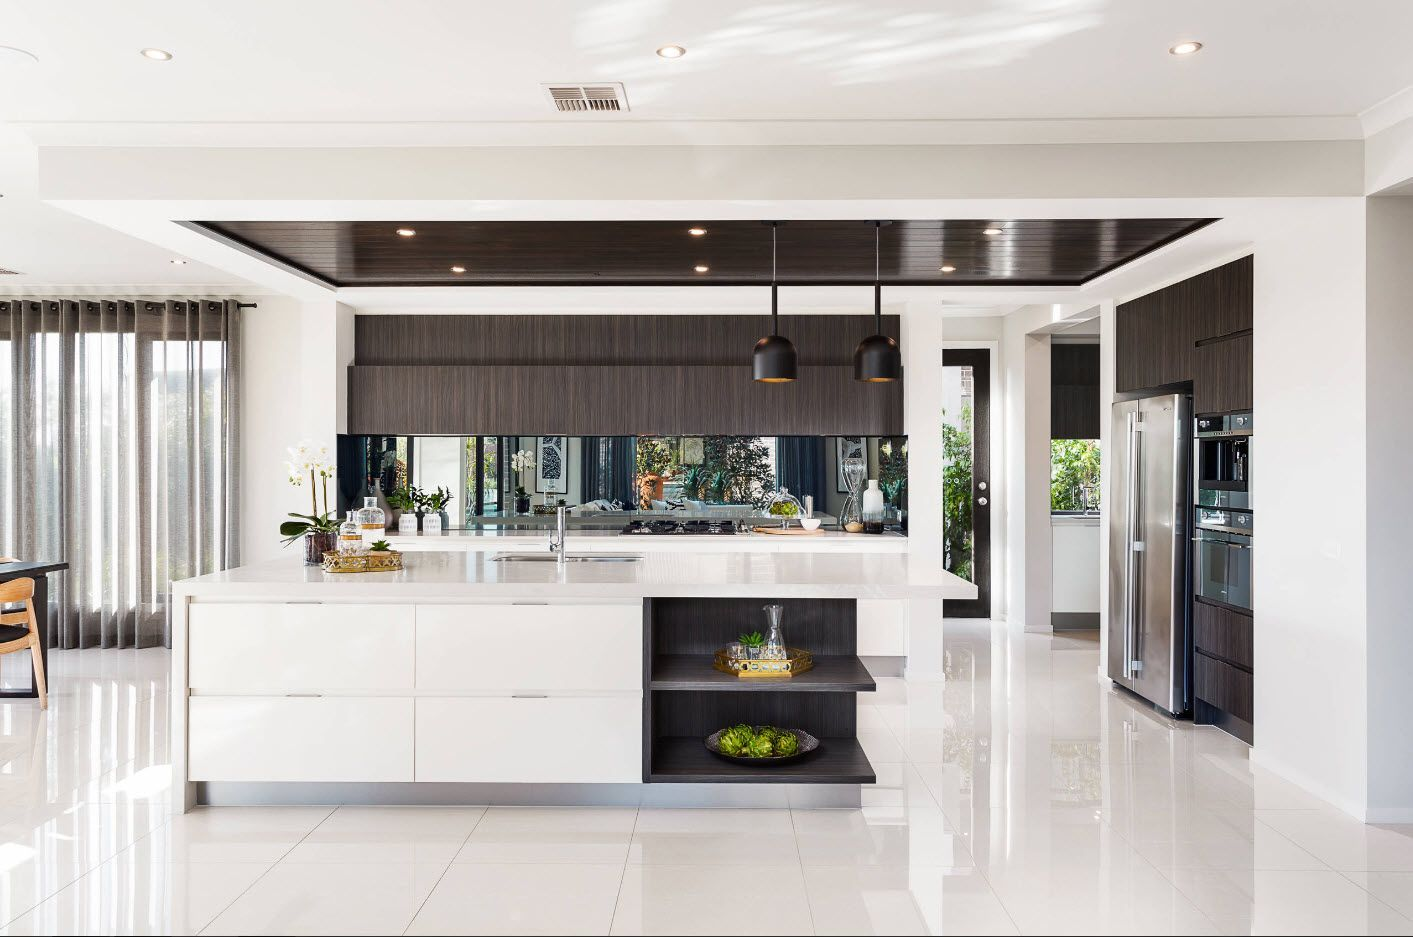 Nice design effect achieved by utilizing the gray suspended ceiling in the cooking zone